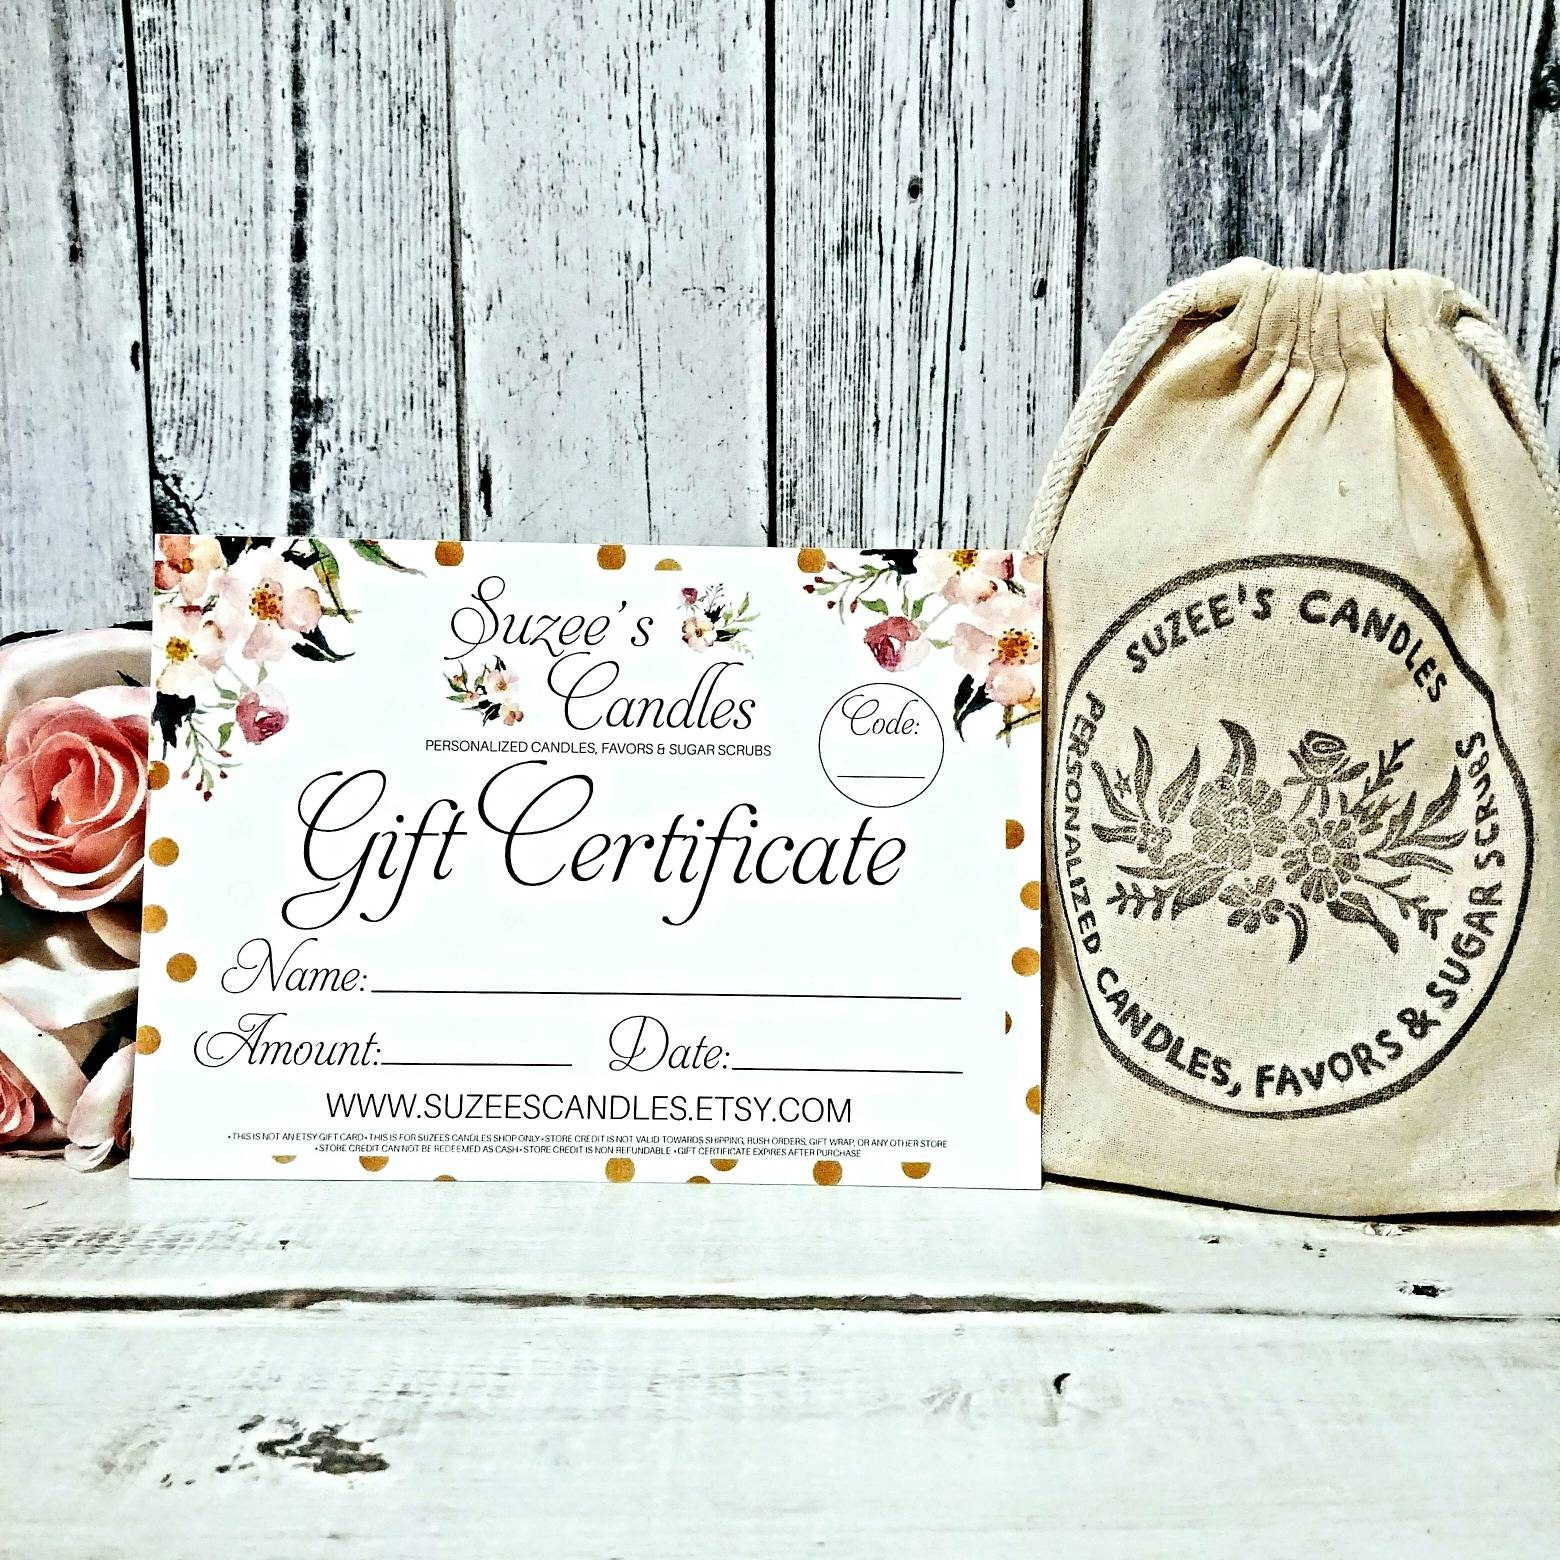 Wedding Gift Ideas - Personalized Wedding Gift - Gift Card for ...